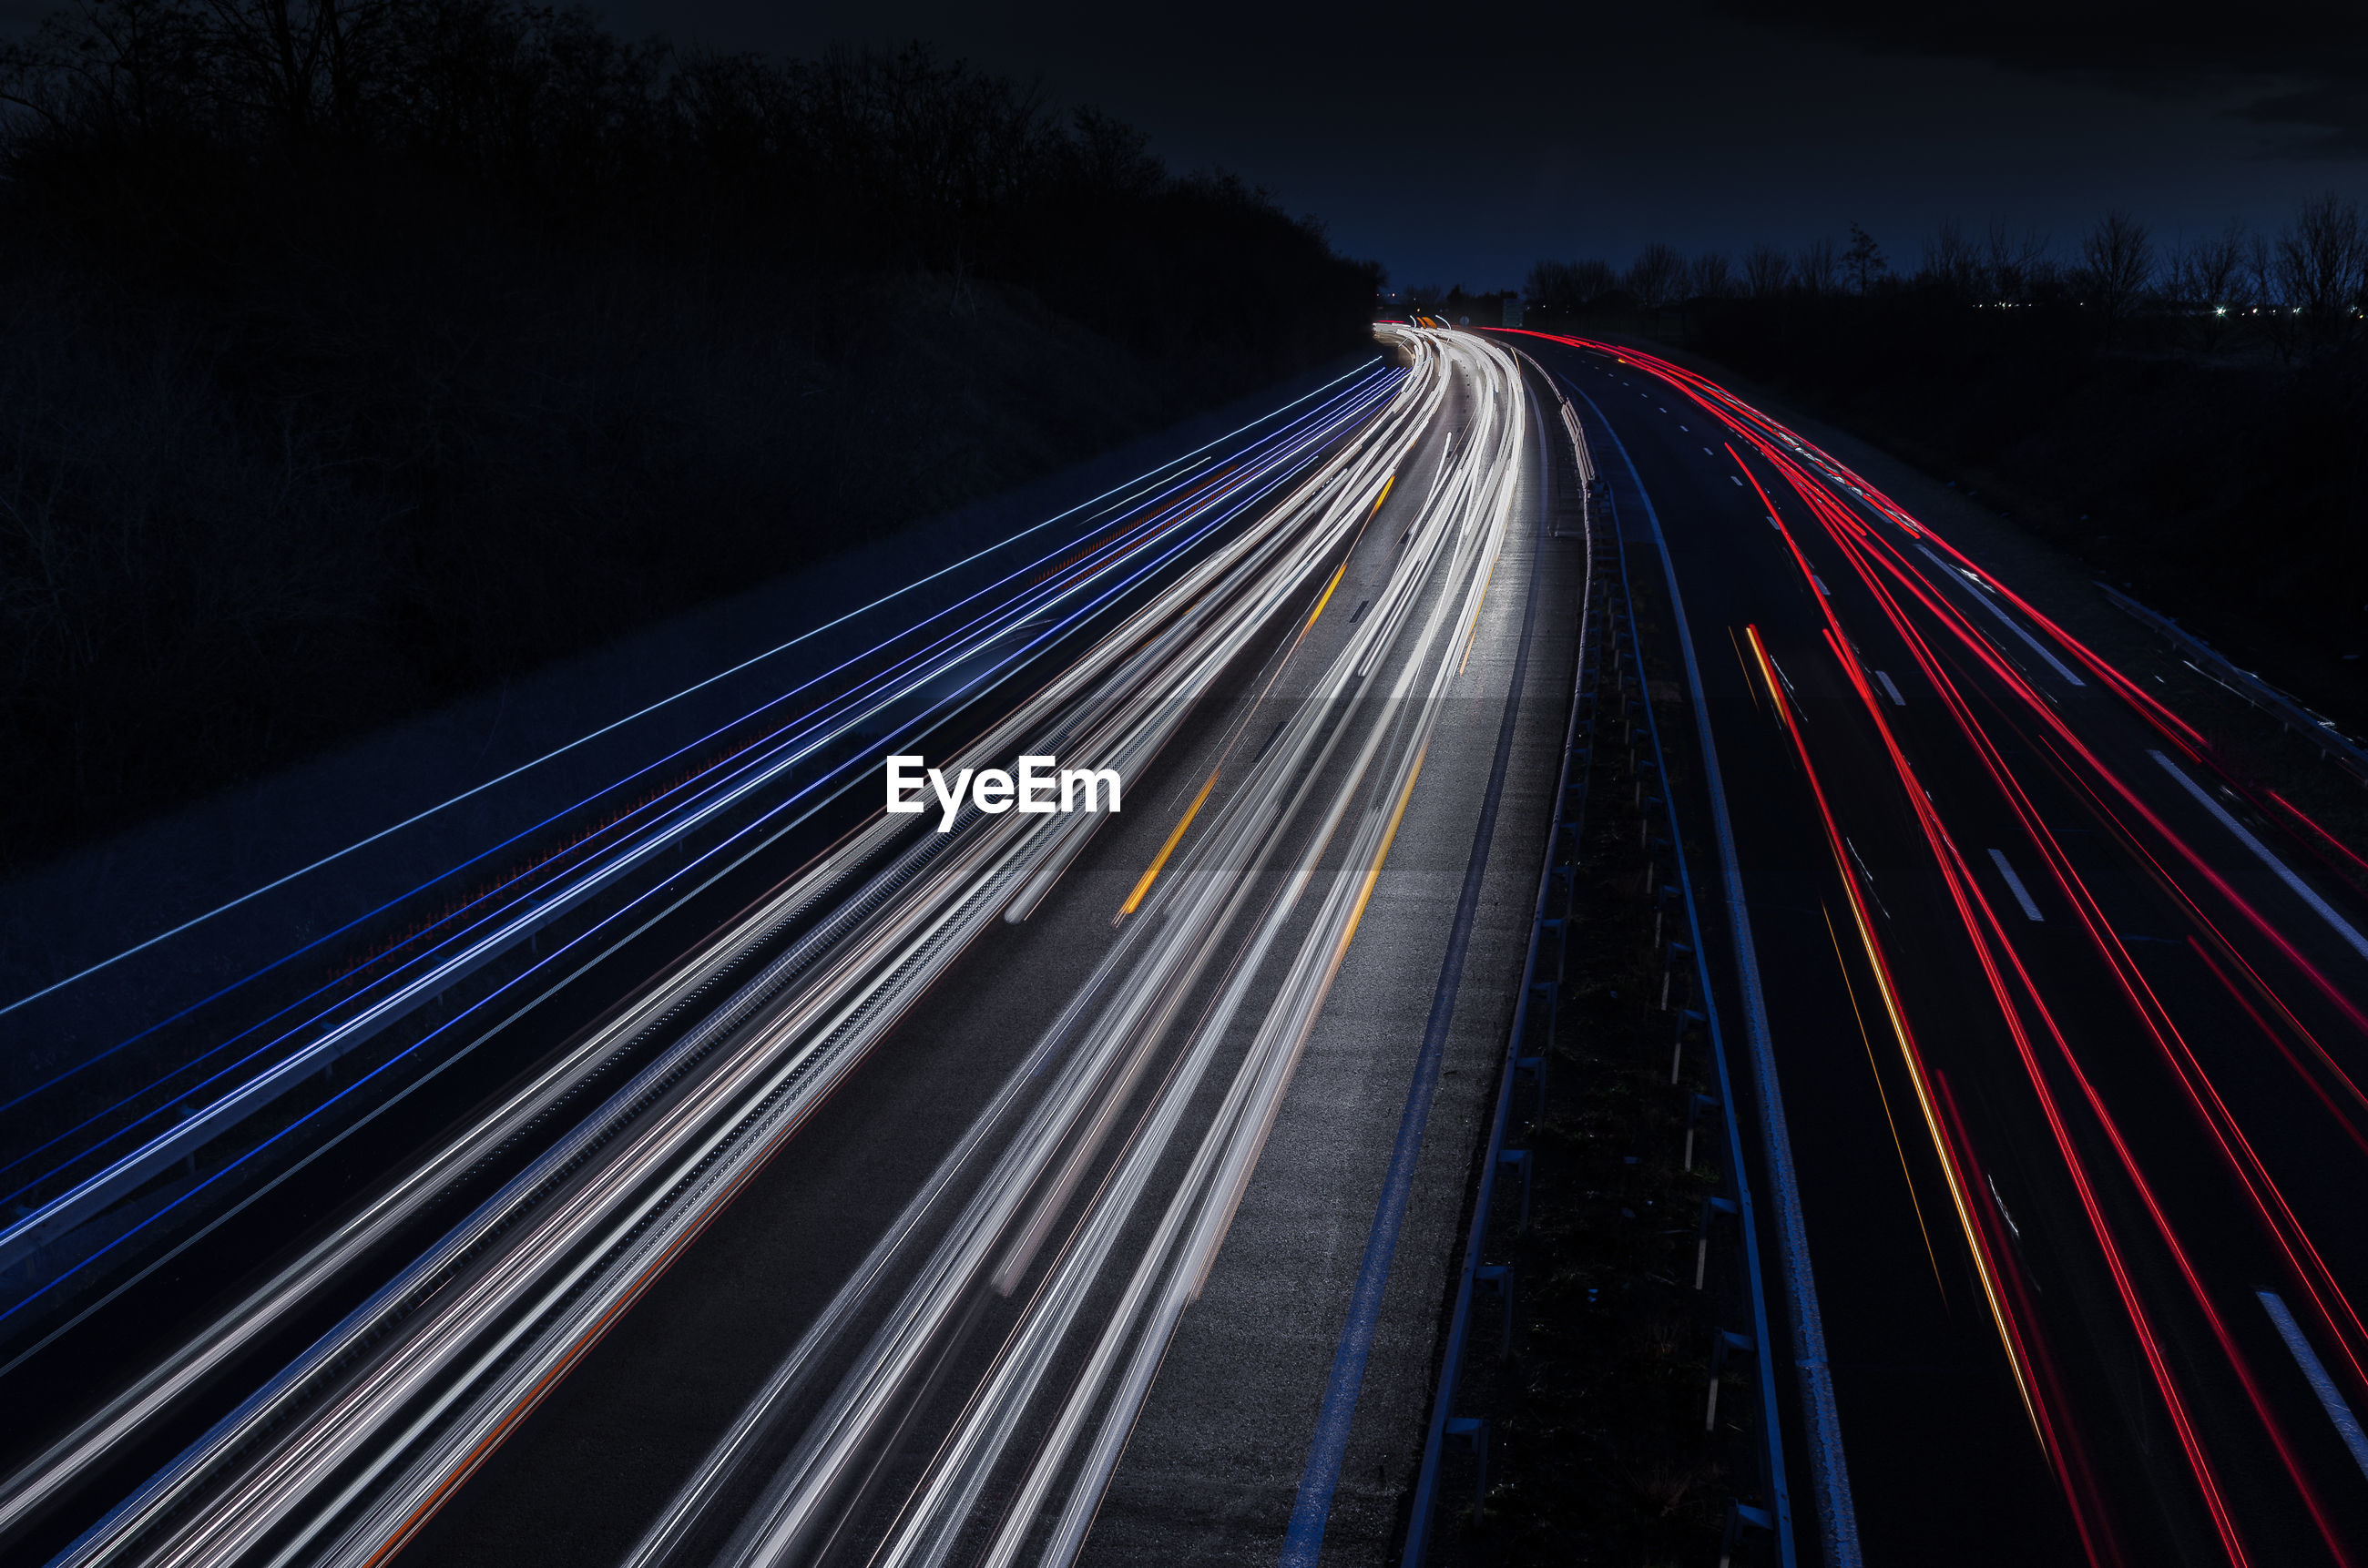 HIGH ANGLE VIEW OF LIGHT TRAILS ON ROAD DURING NIGHT